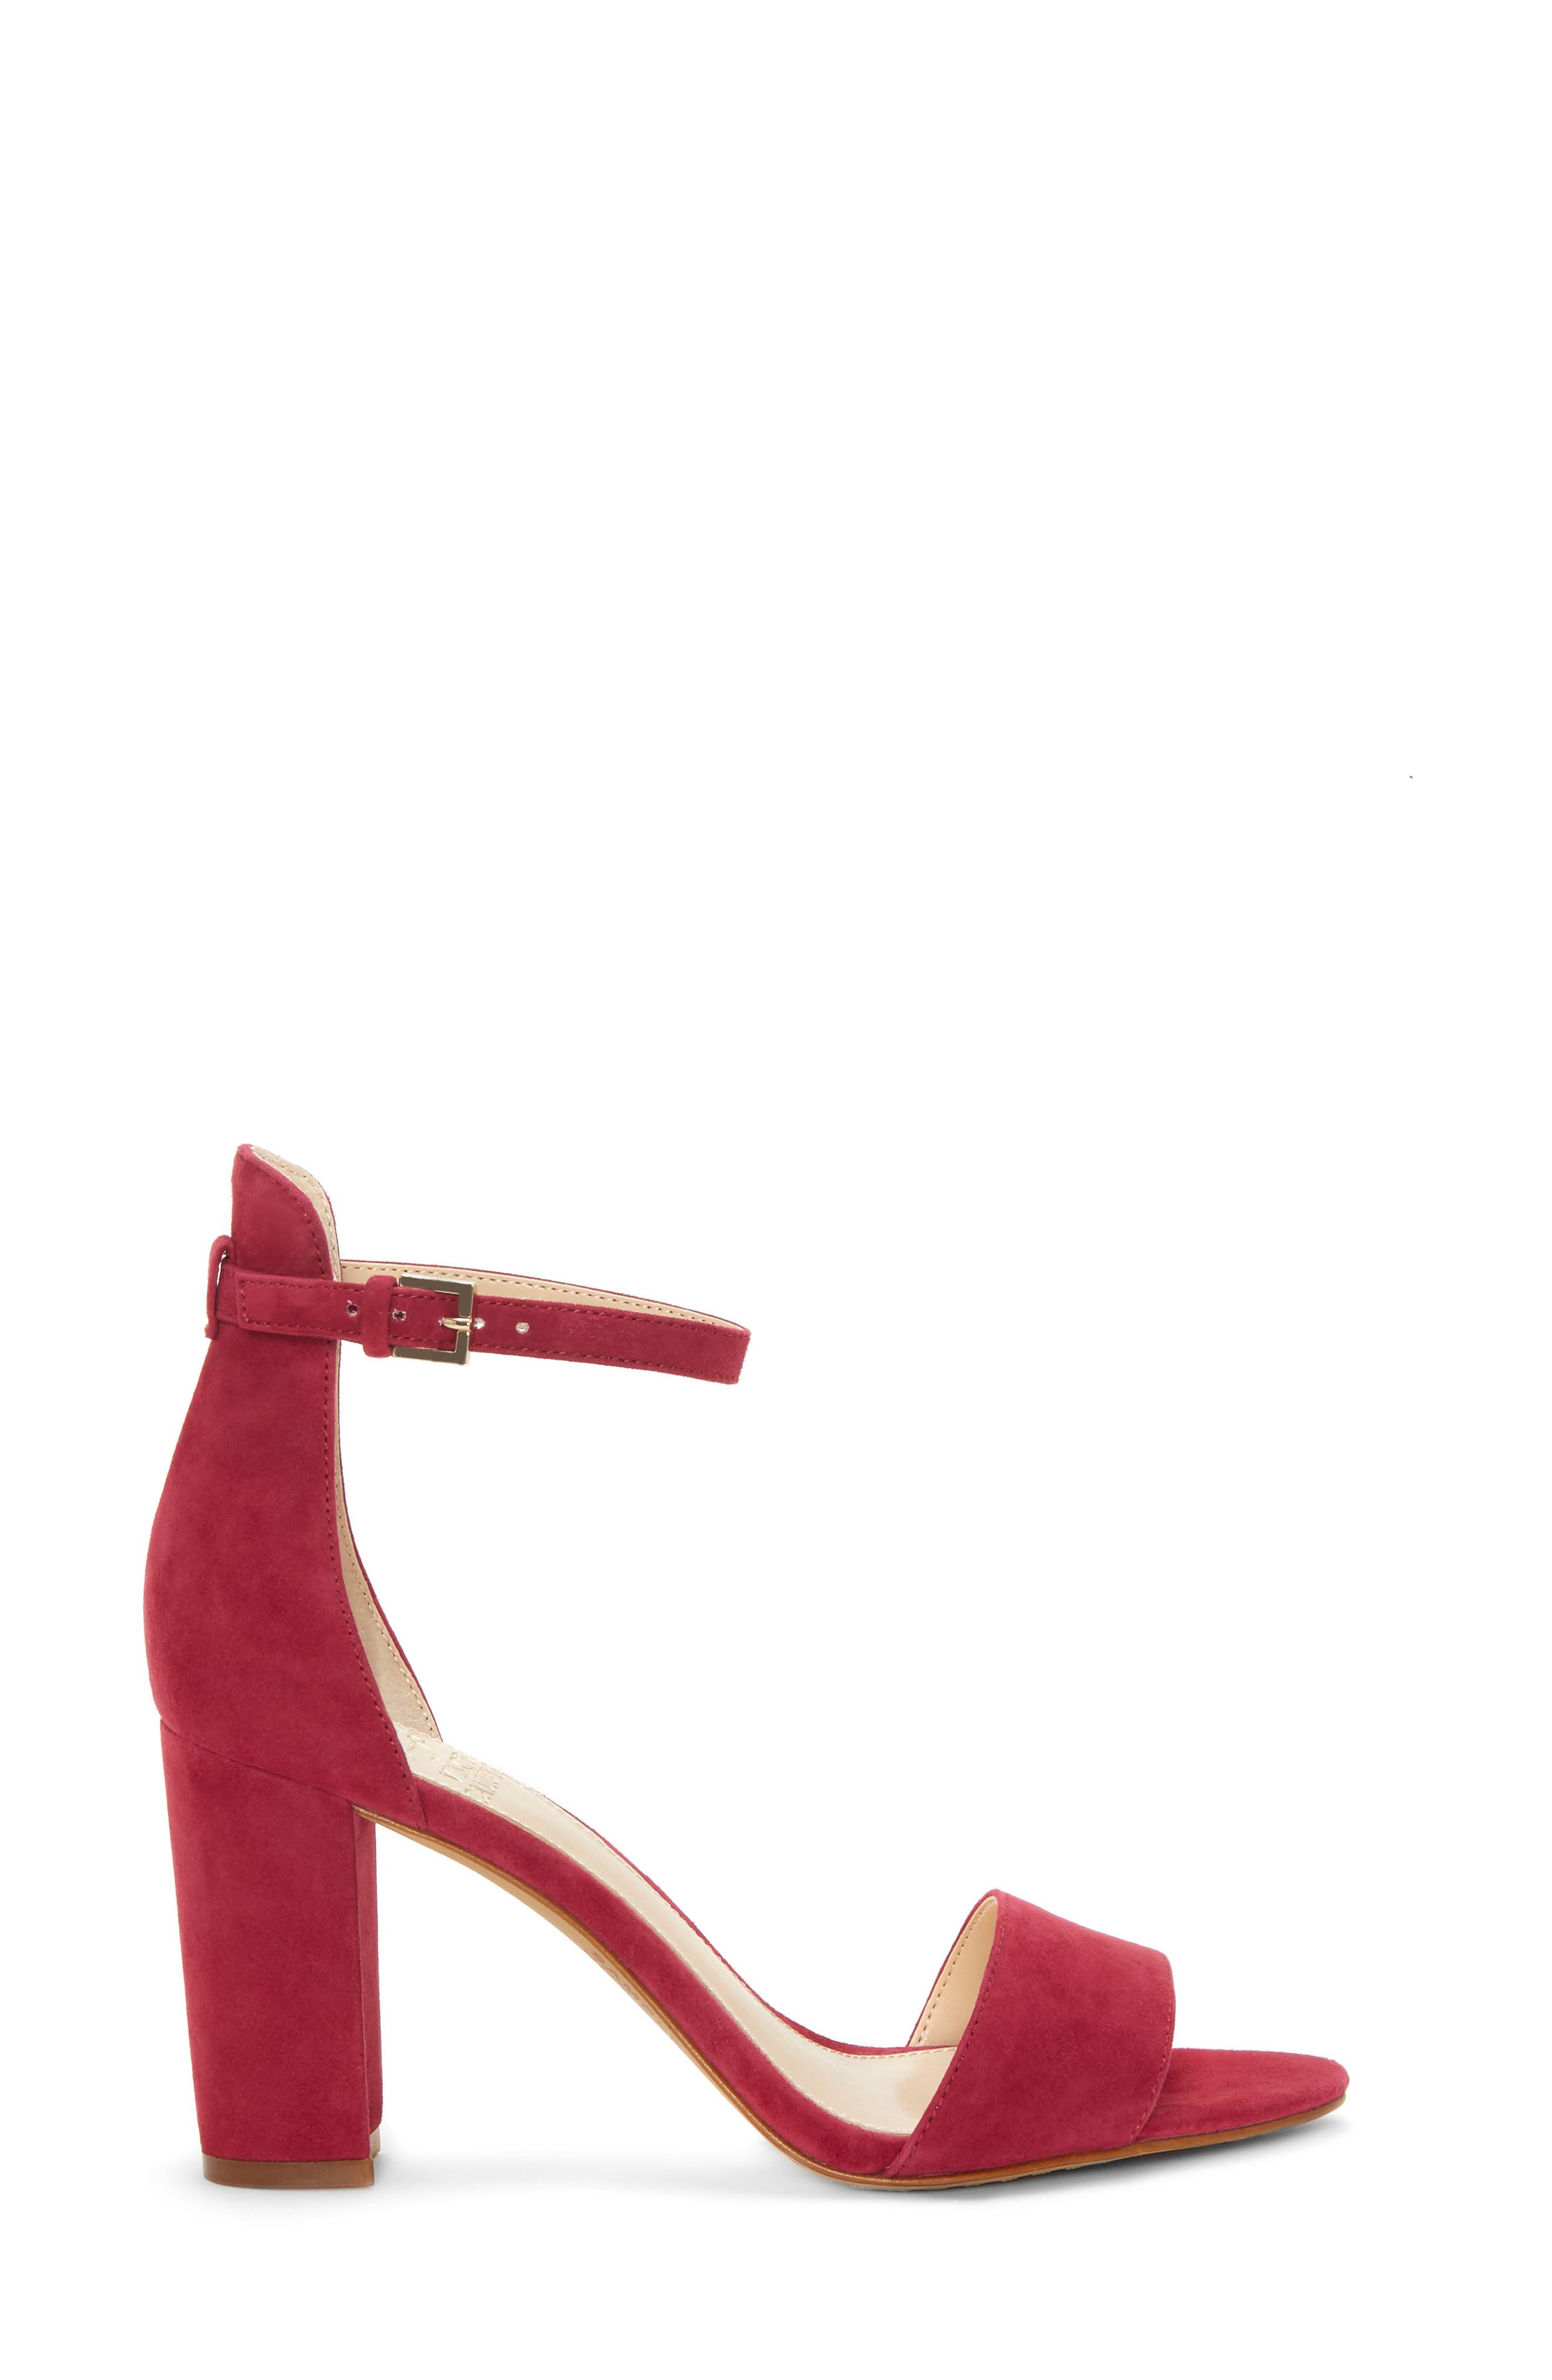 Corlina Ankle Strap Sandal,                             Alternate thumbnail 3, color,                             SWEET BERRY SUEDE